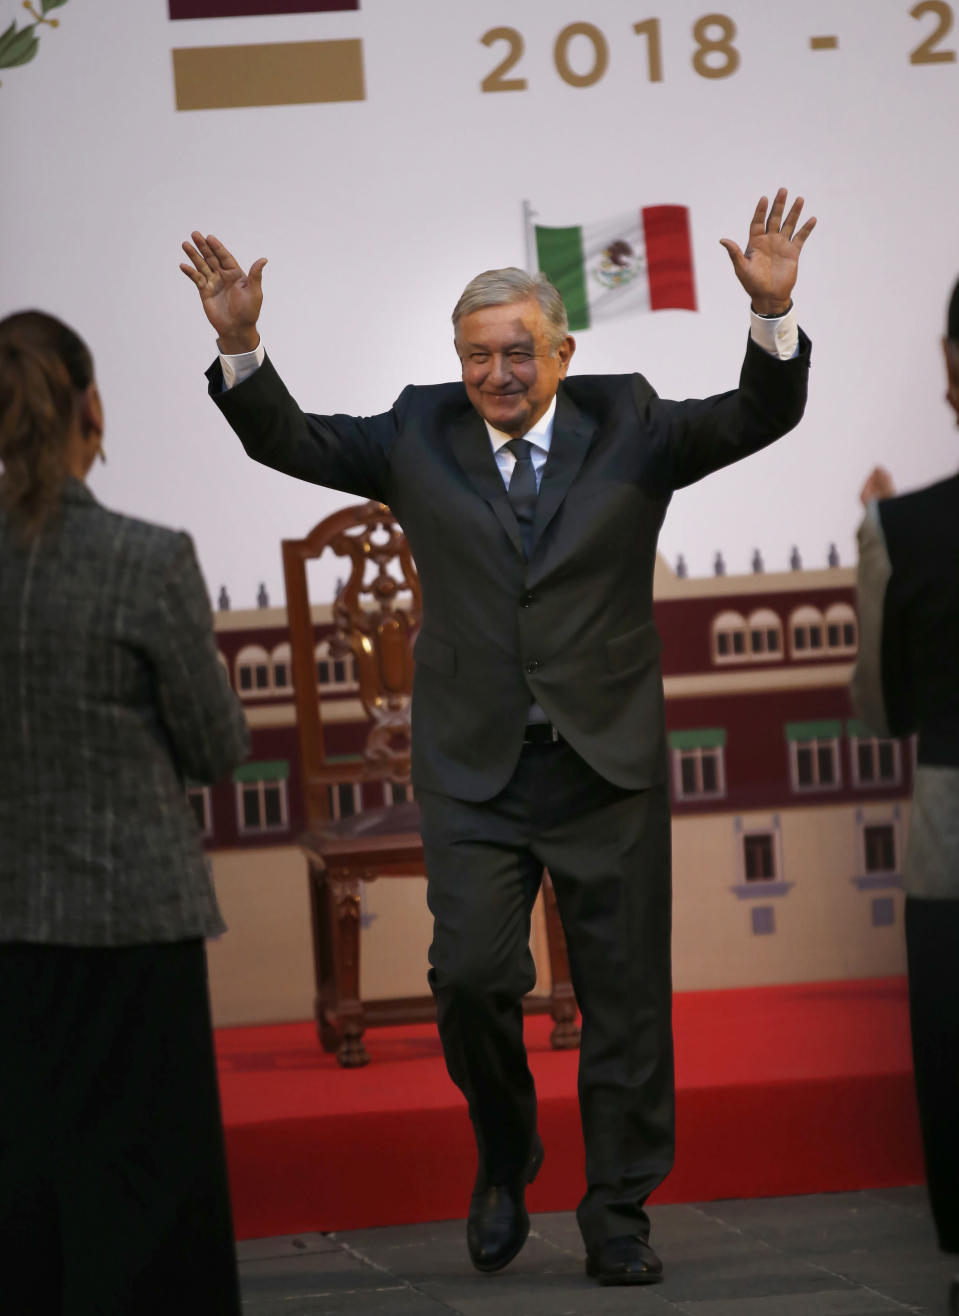 Mexican President Andres Manuel Lopez Obrador walks toward first lady Beatriz Gutierrez at the end of a ceremony to mark his second anniversary in office, at the National Palace in Mexico City, on Tuesday, December 1, 2020. (Photo AP/Marco Ugarte)